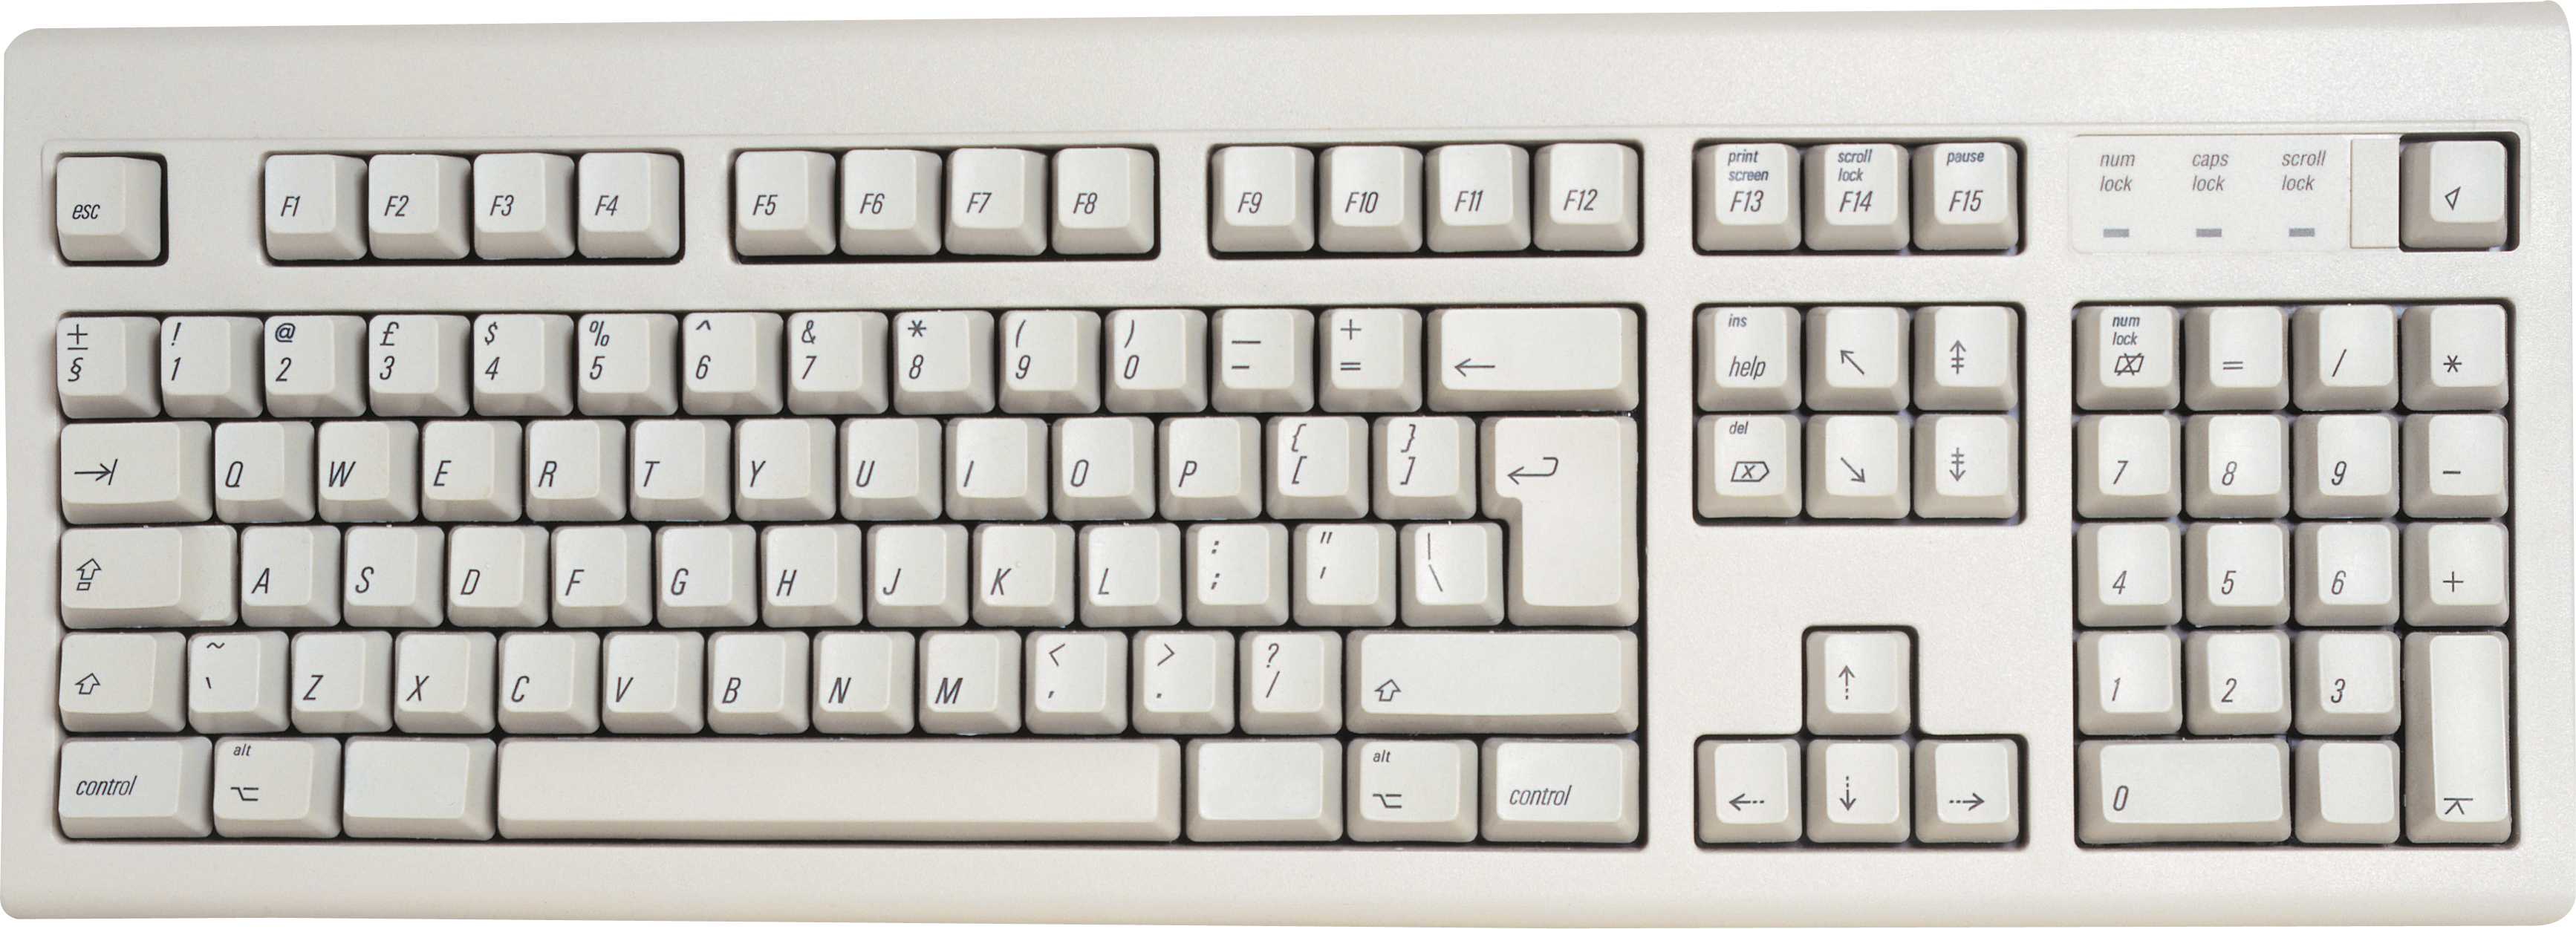 Keyboard clipart normal computer. Pc png images free